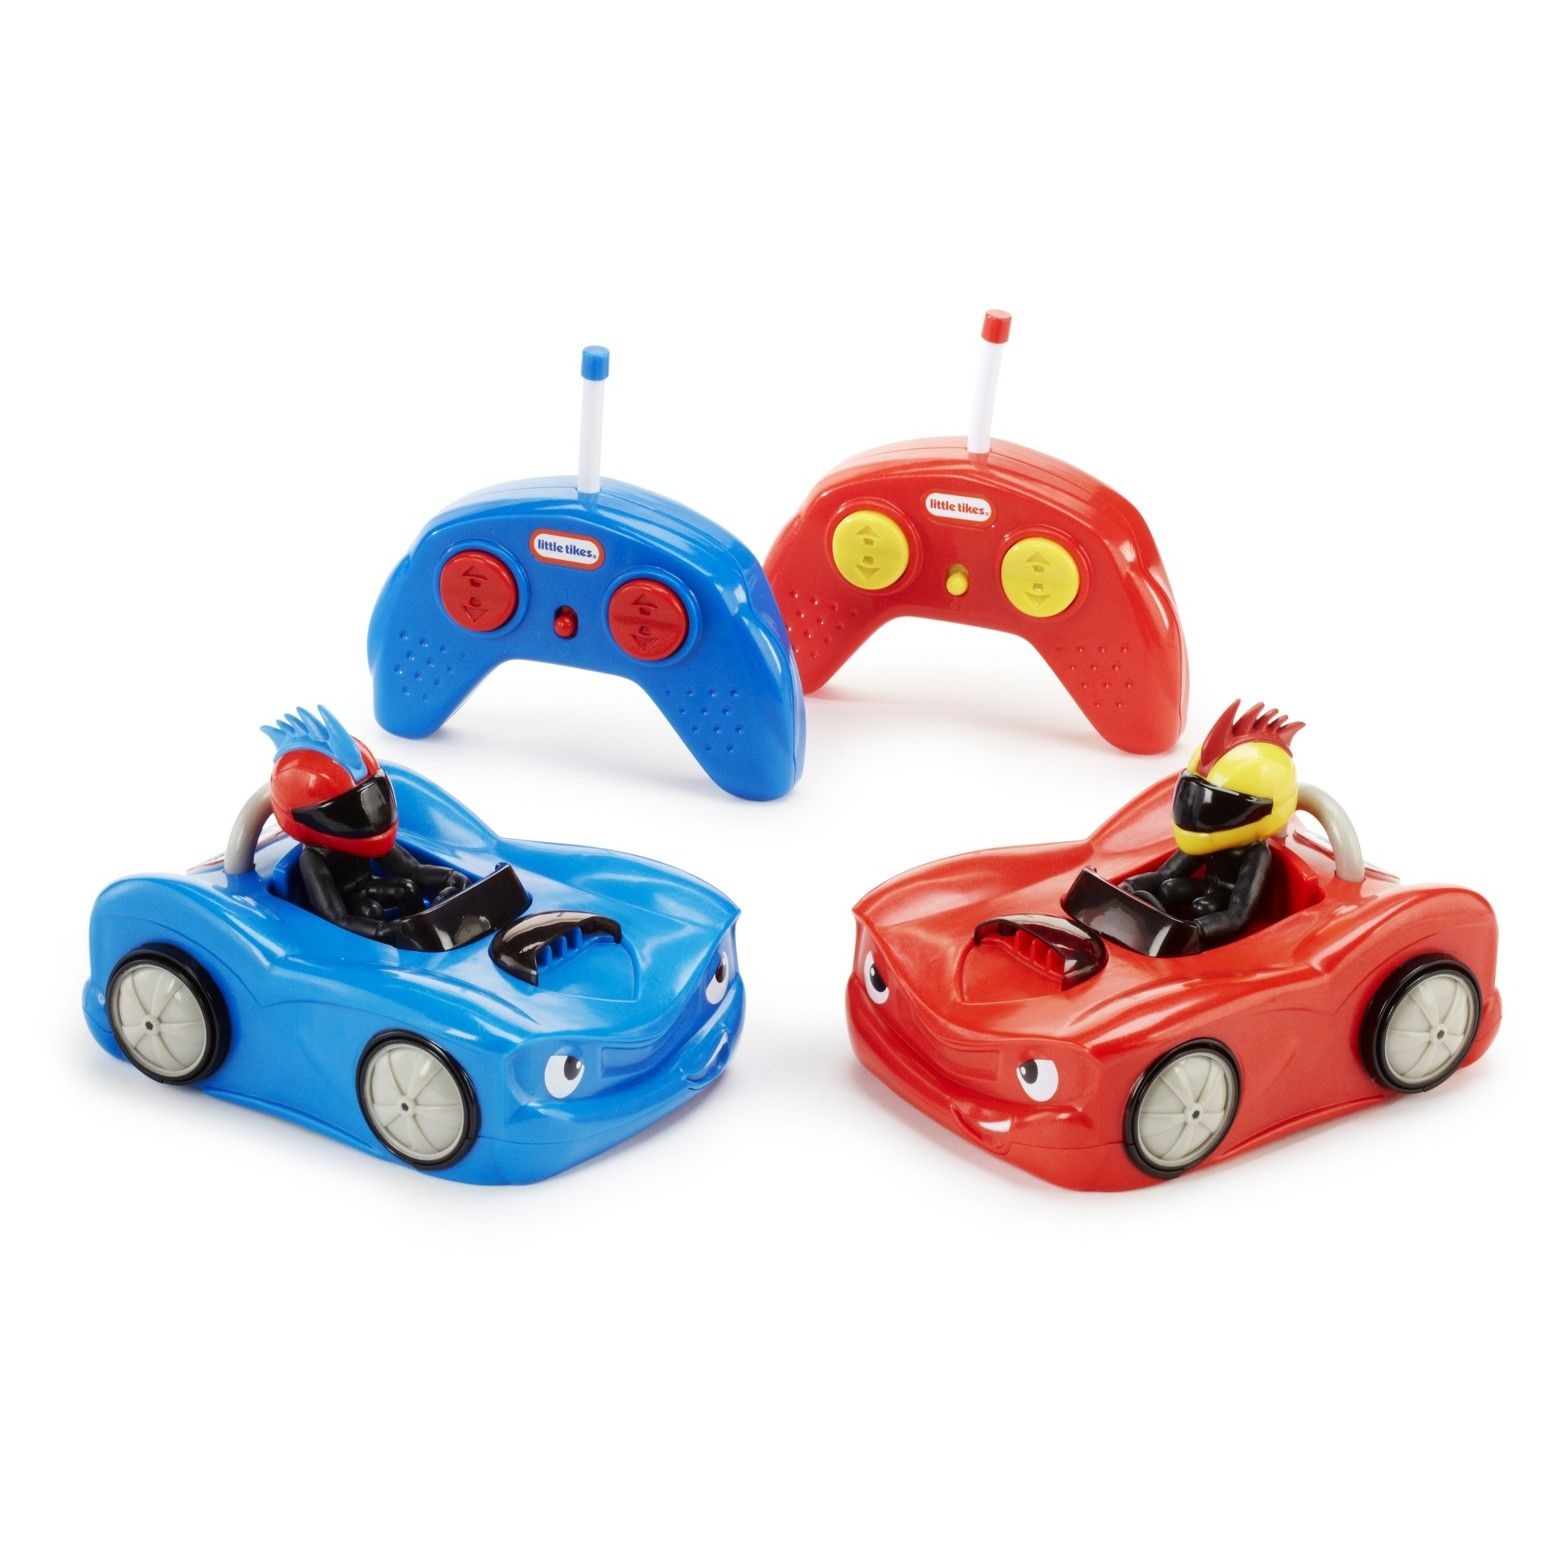 Toys car for baby  Little Tikes RC Bumper Cars Pk  Pinterest  Bump and Babies